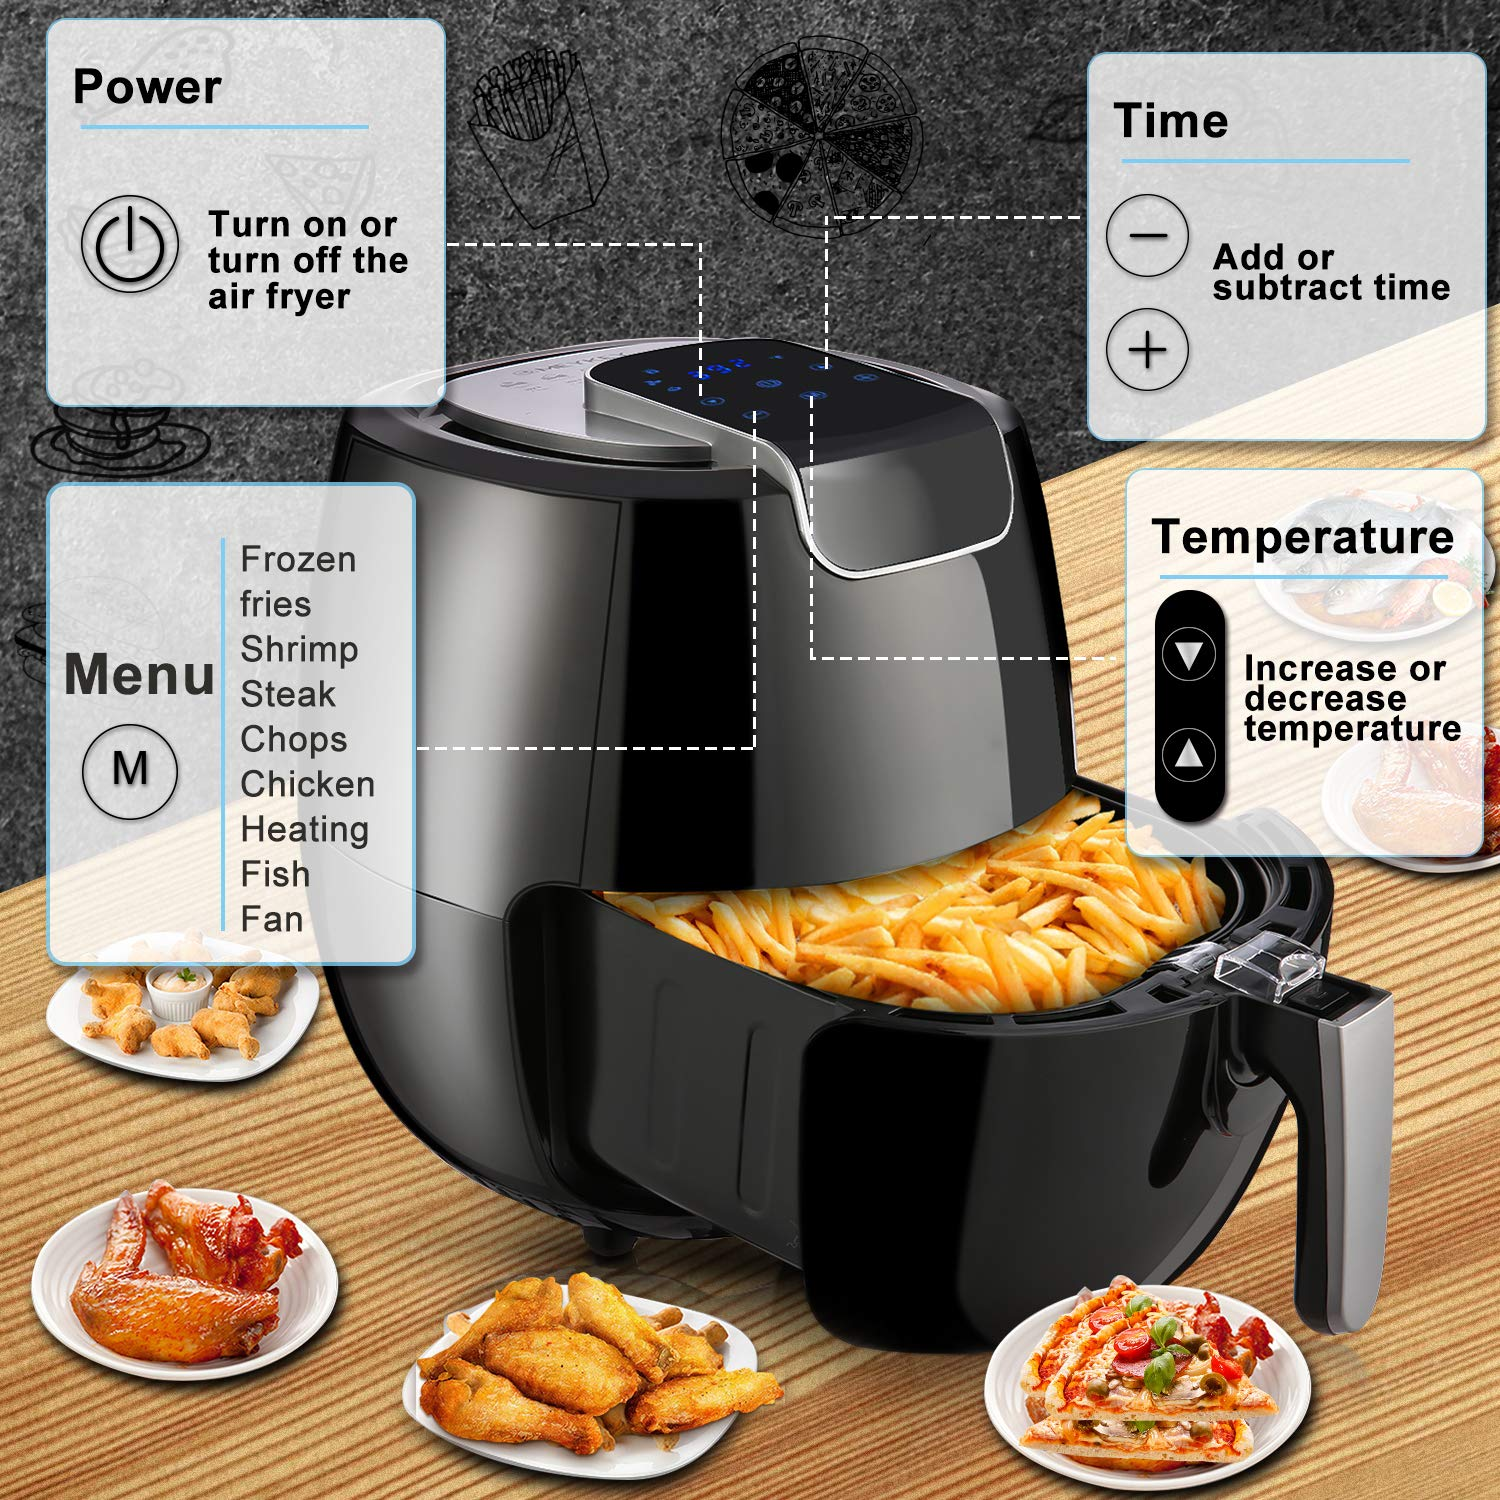 Air Fryer XL 6.8QT, 1800W Electric Hot Air Fryers Oven Oilless Cooker, LCD Digital Touchscreen, 8 Cooking Presets, Preheat & Nonstick Basket for Fast Healthier Fried Food by Hauture (Image #2)